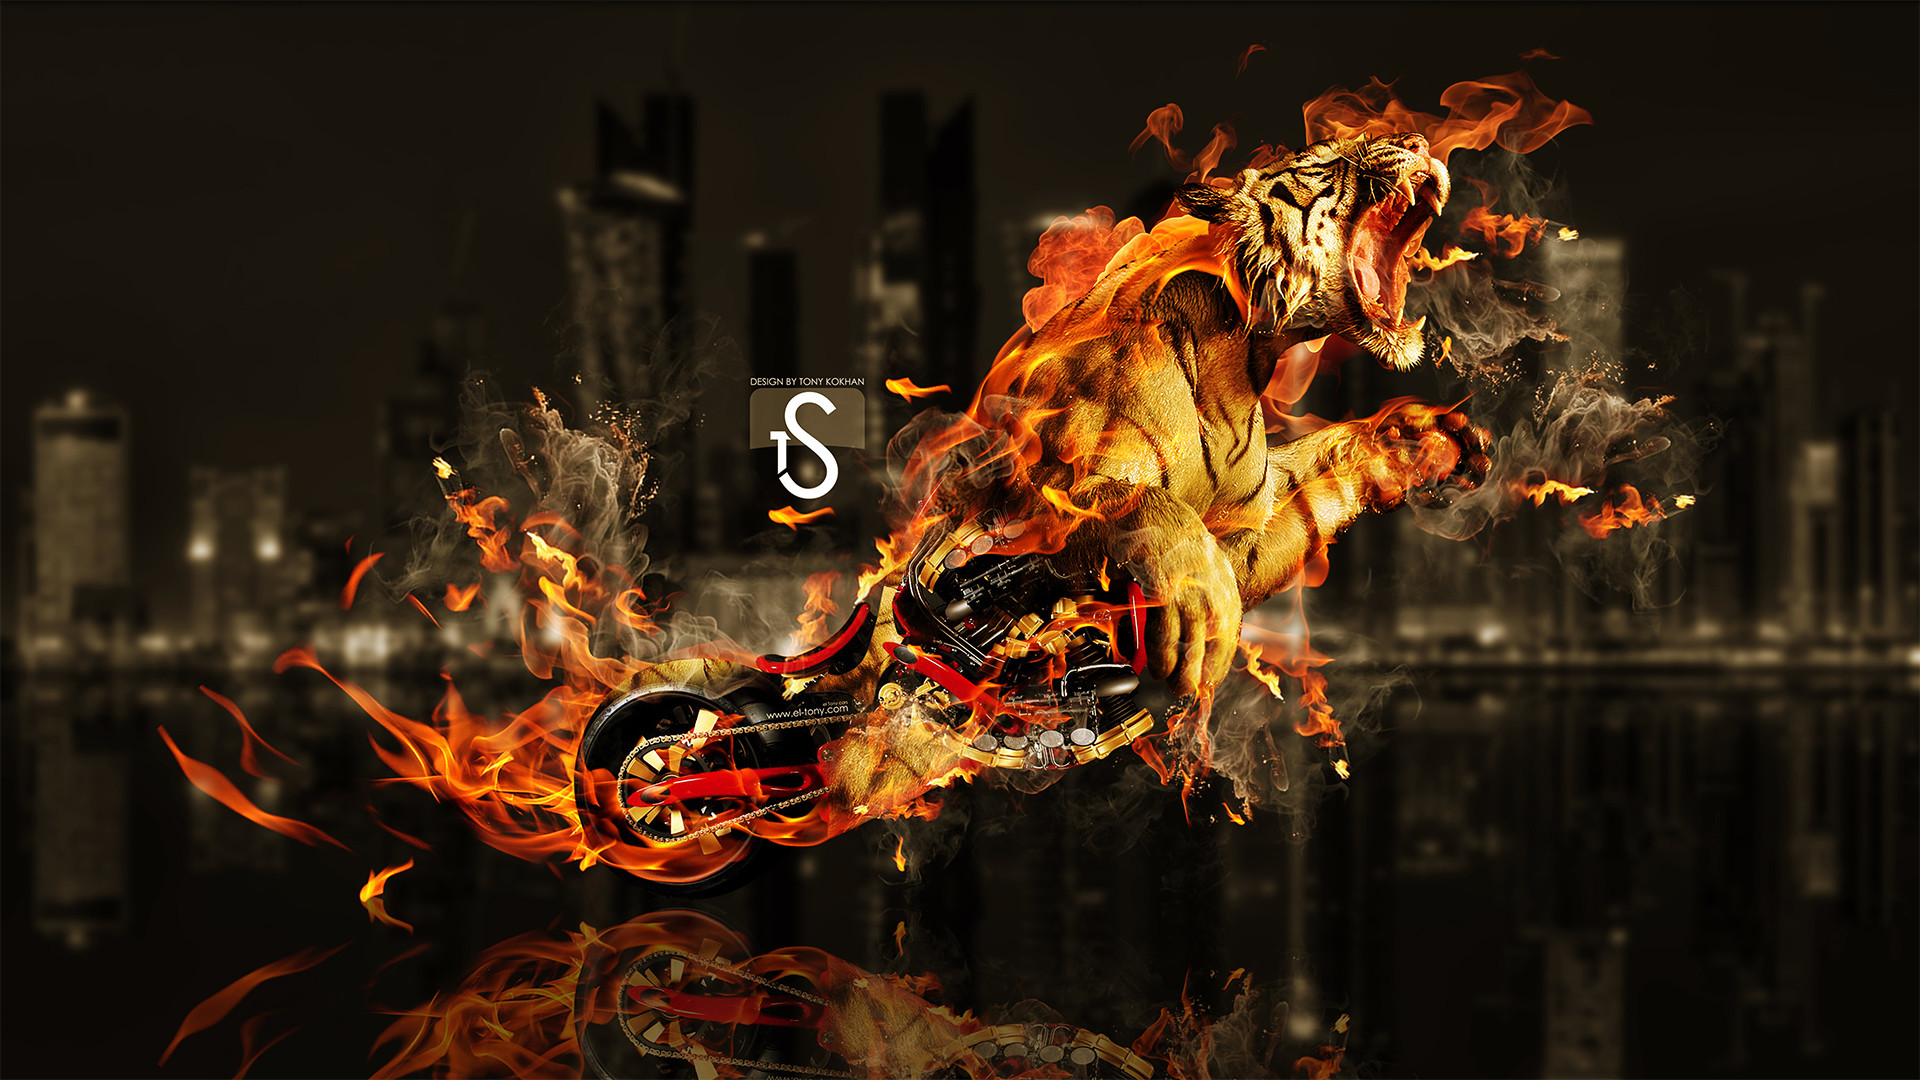 Res: 1920x1080, Tiger in Fire Wallpaper